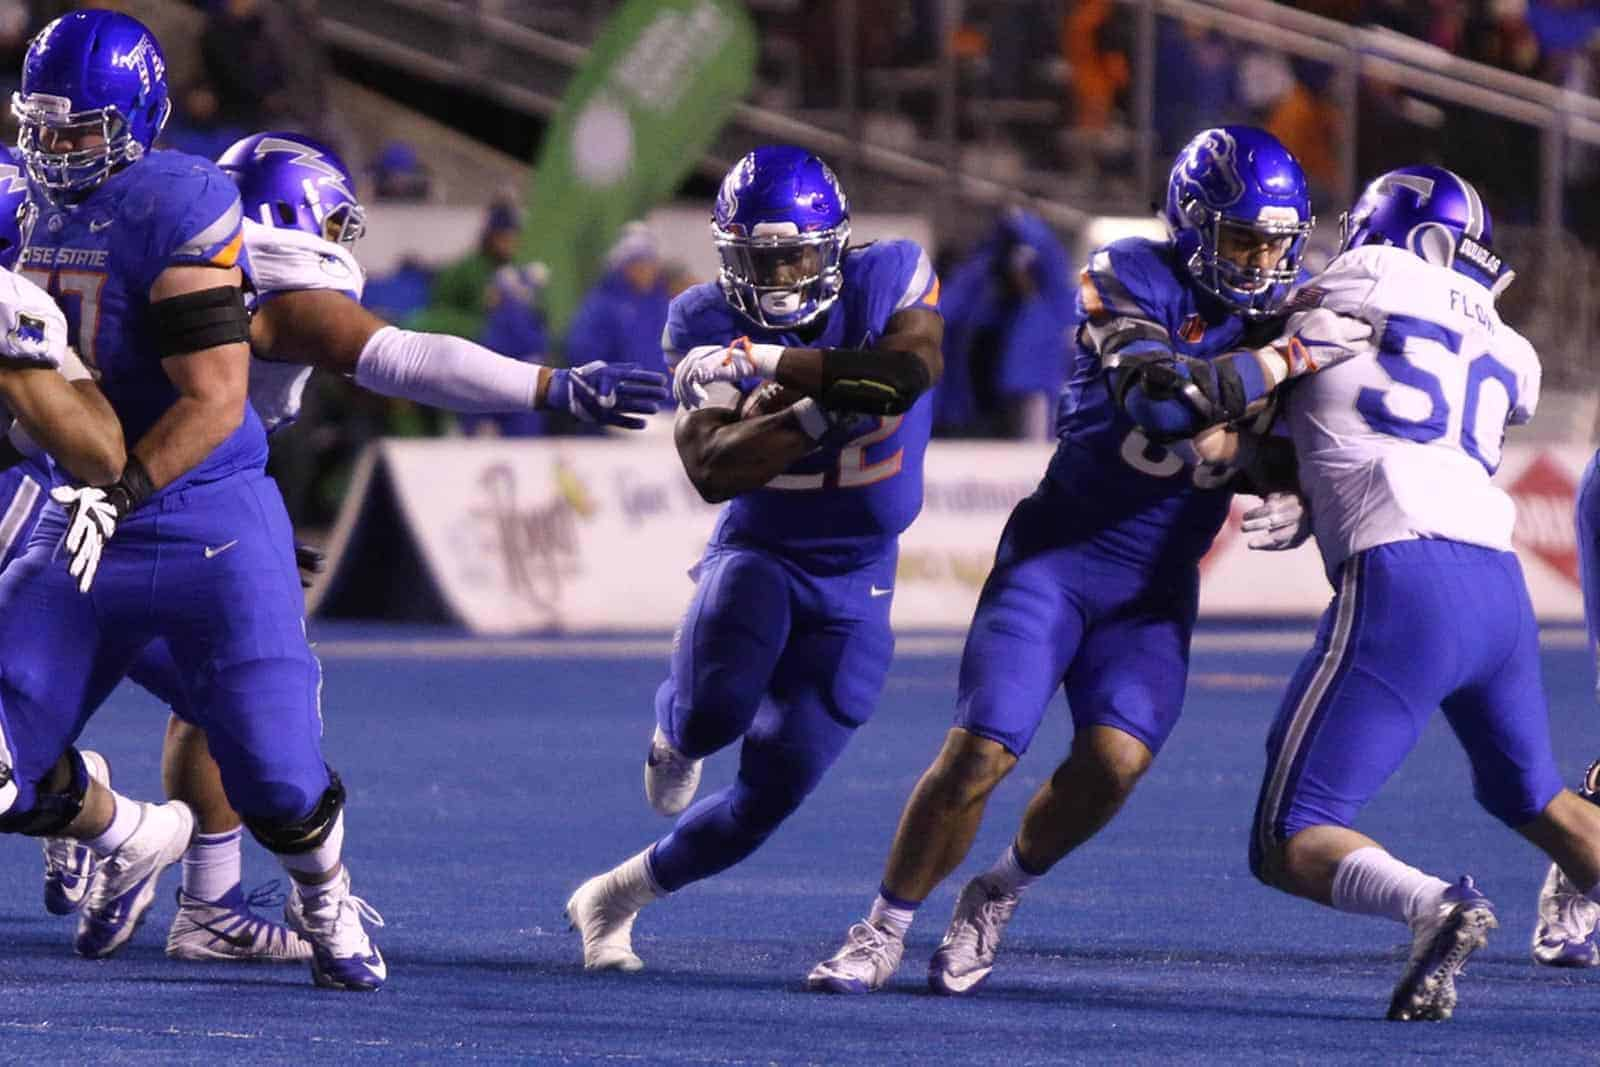 College Football Schedule: Boise State